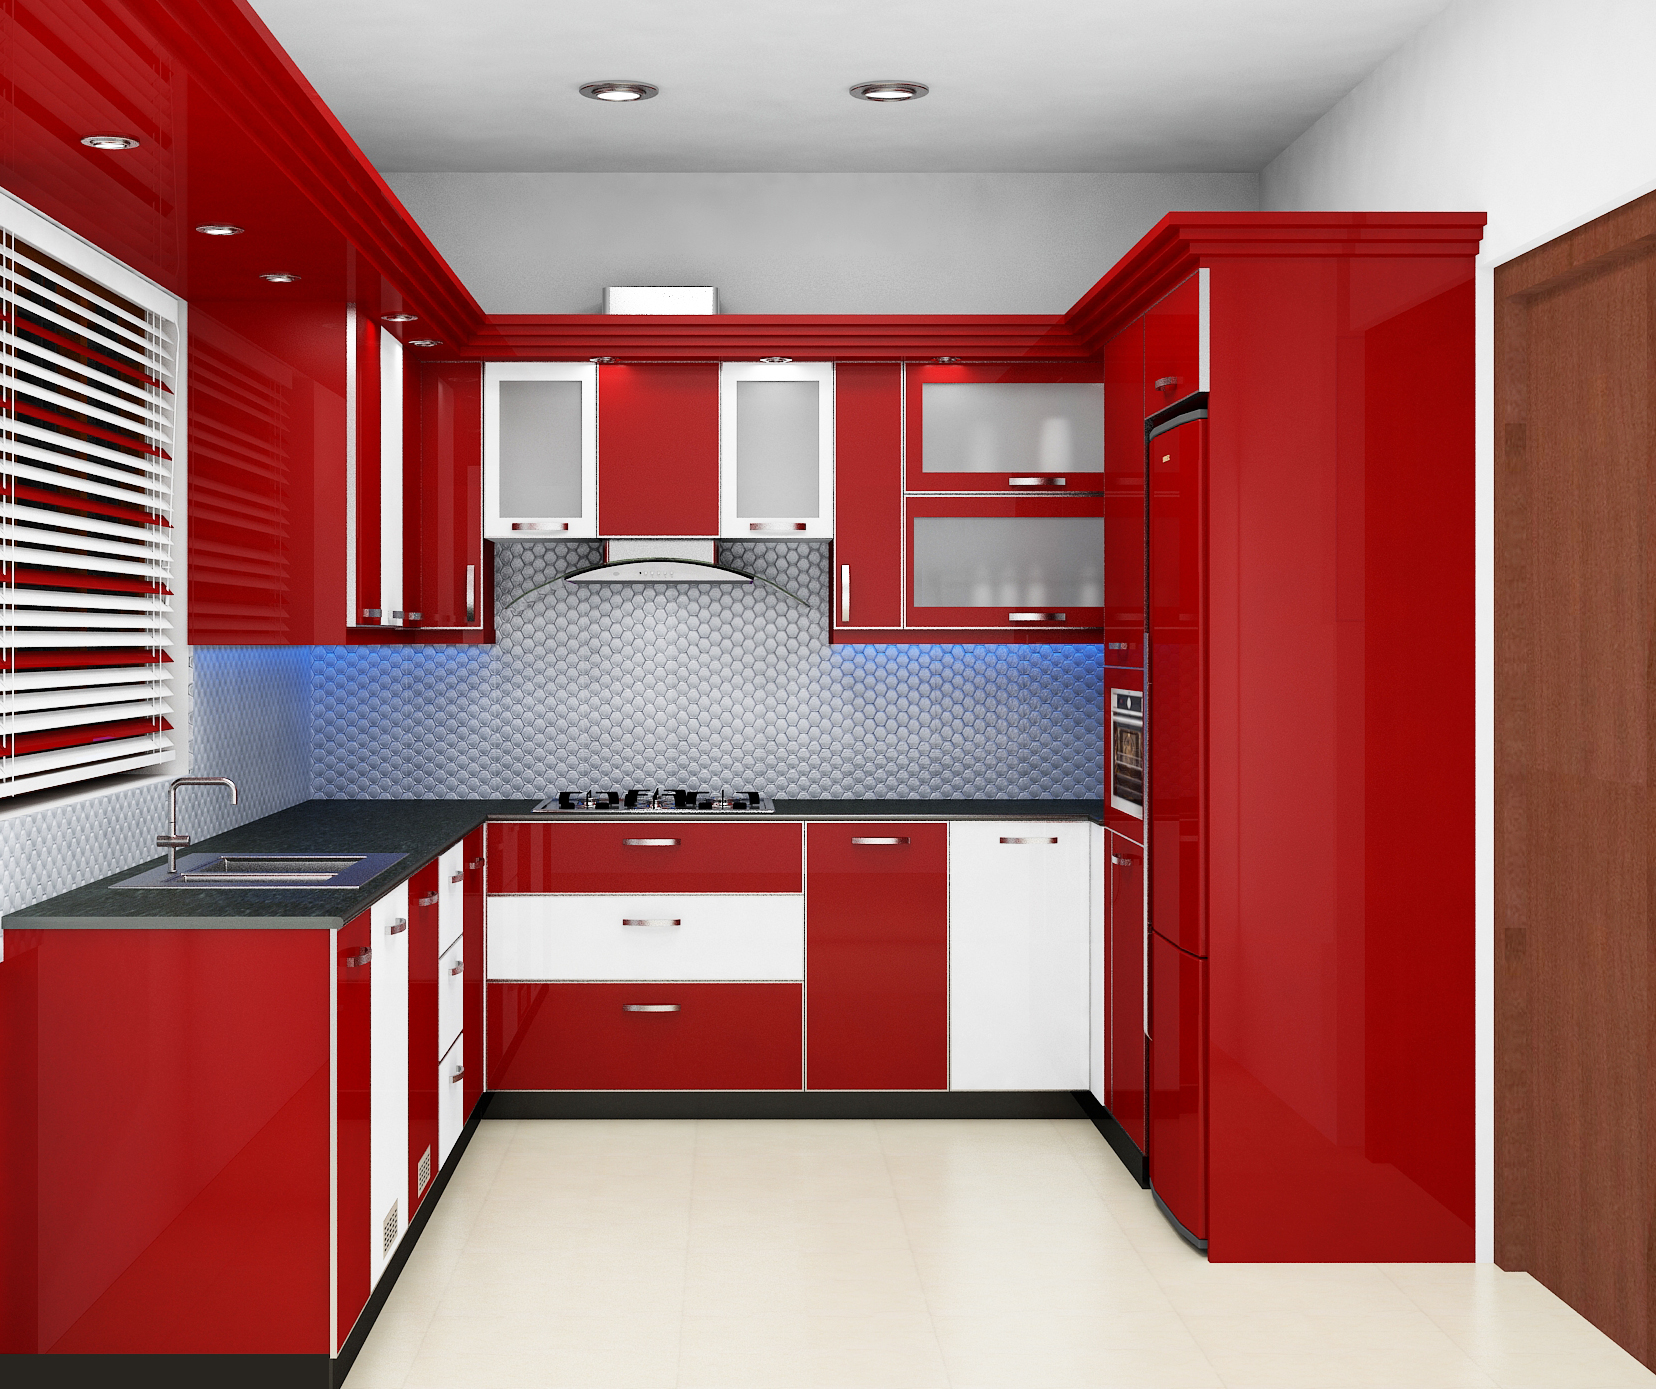 Exemplary and amazing modular kitchen home interior design for House of interior design